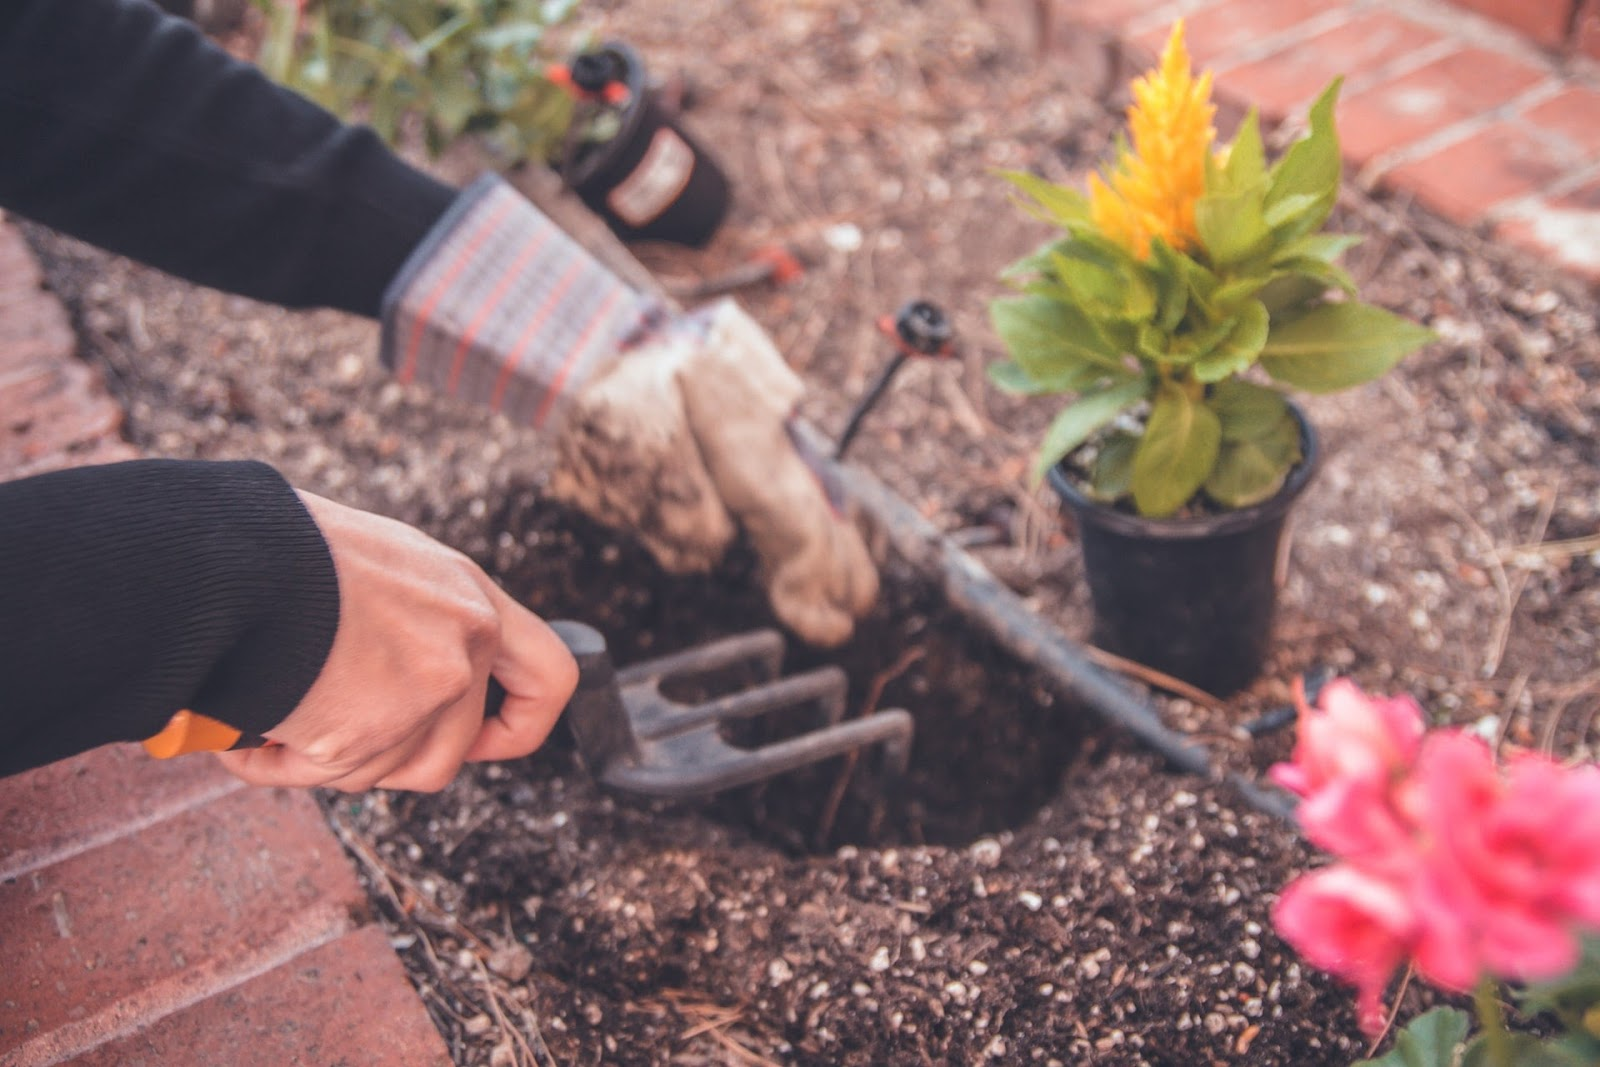 A person digging some mud; gardening is a form of exercise that helps you stay fit